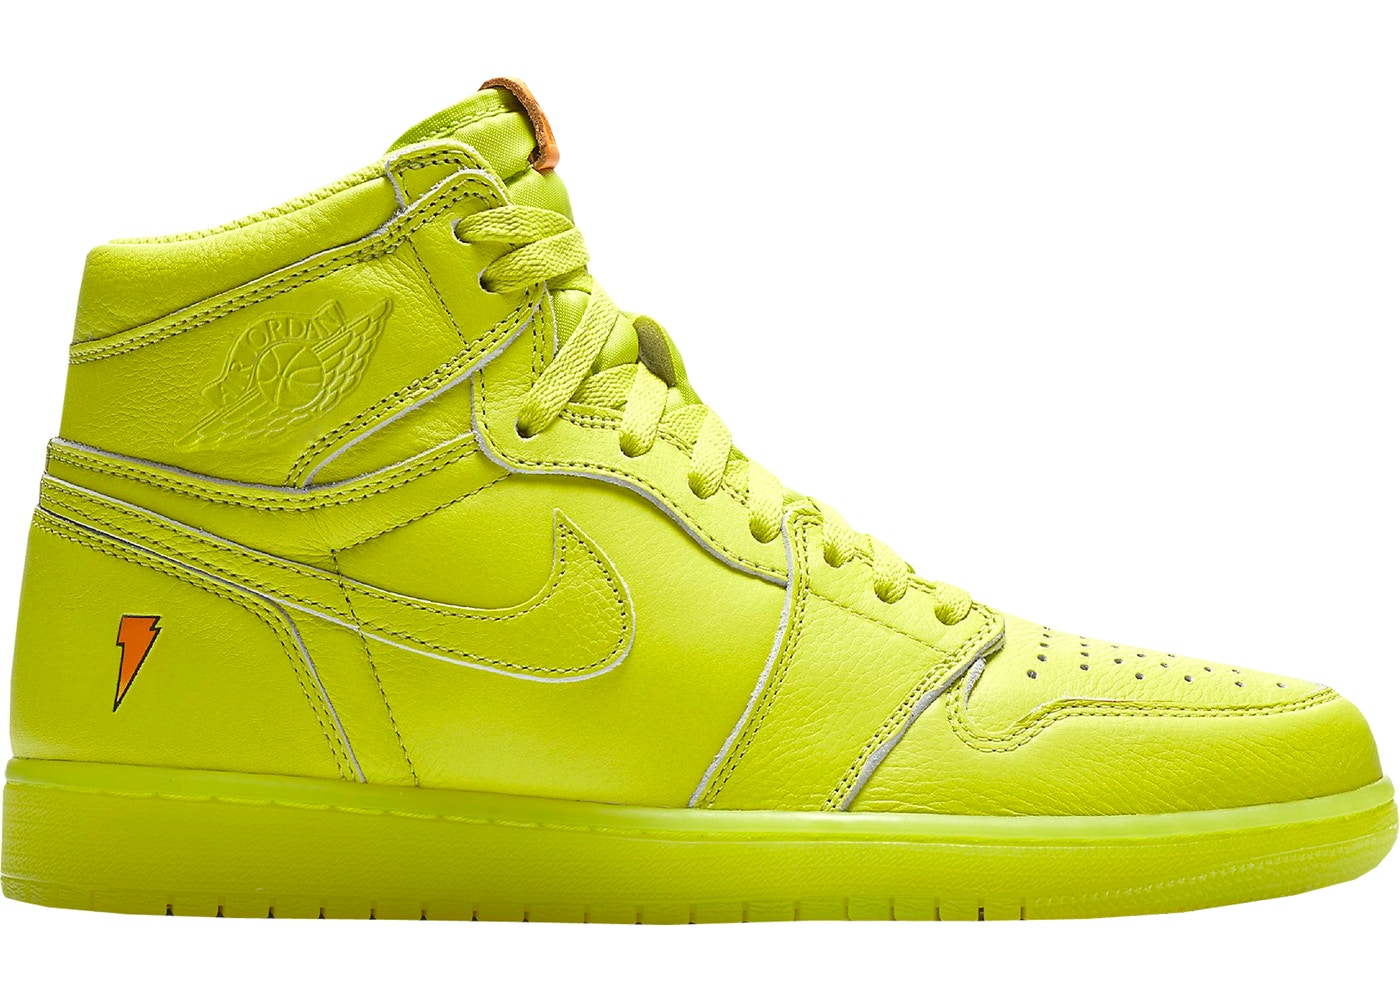 5a56ad014850 Jordan 1 Retro High Gatorade Cyber - AJ5997-345